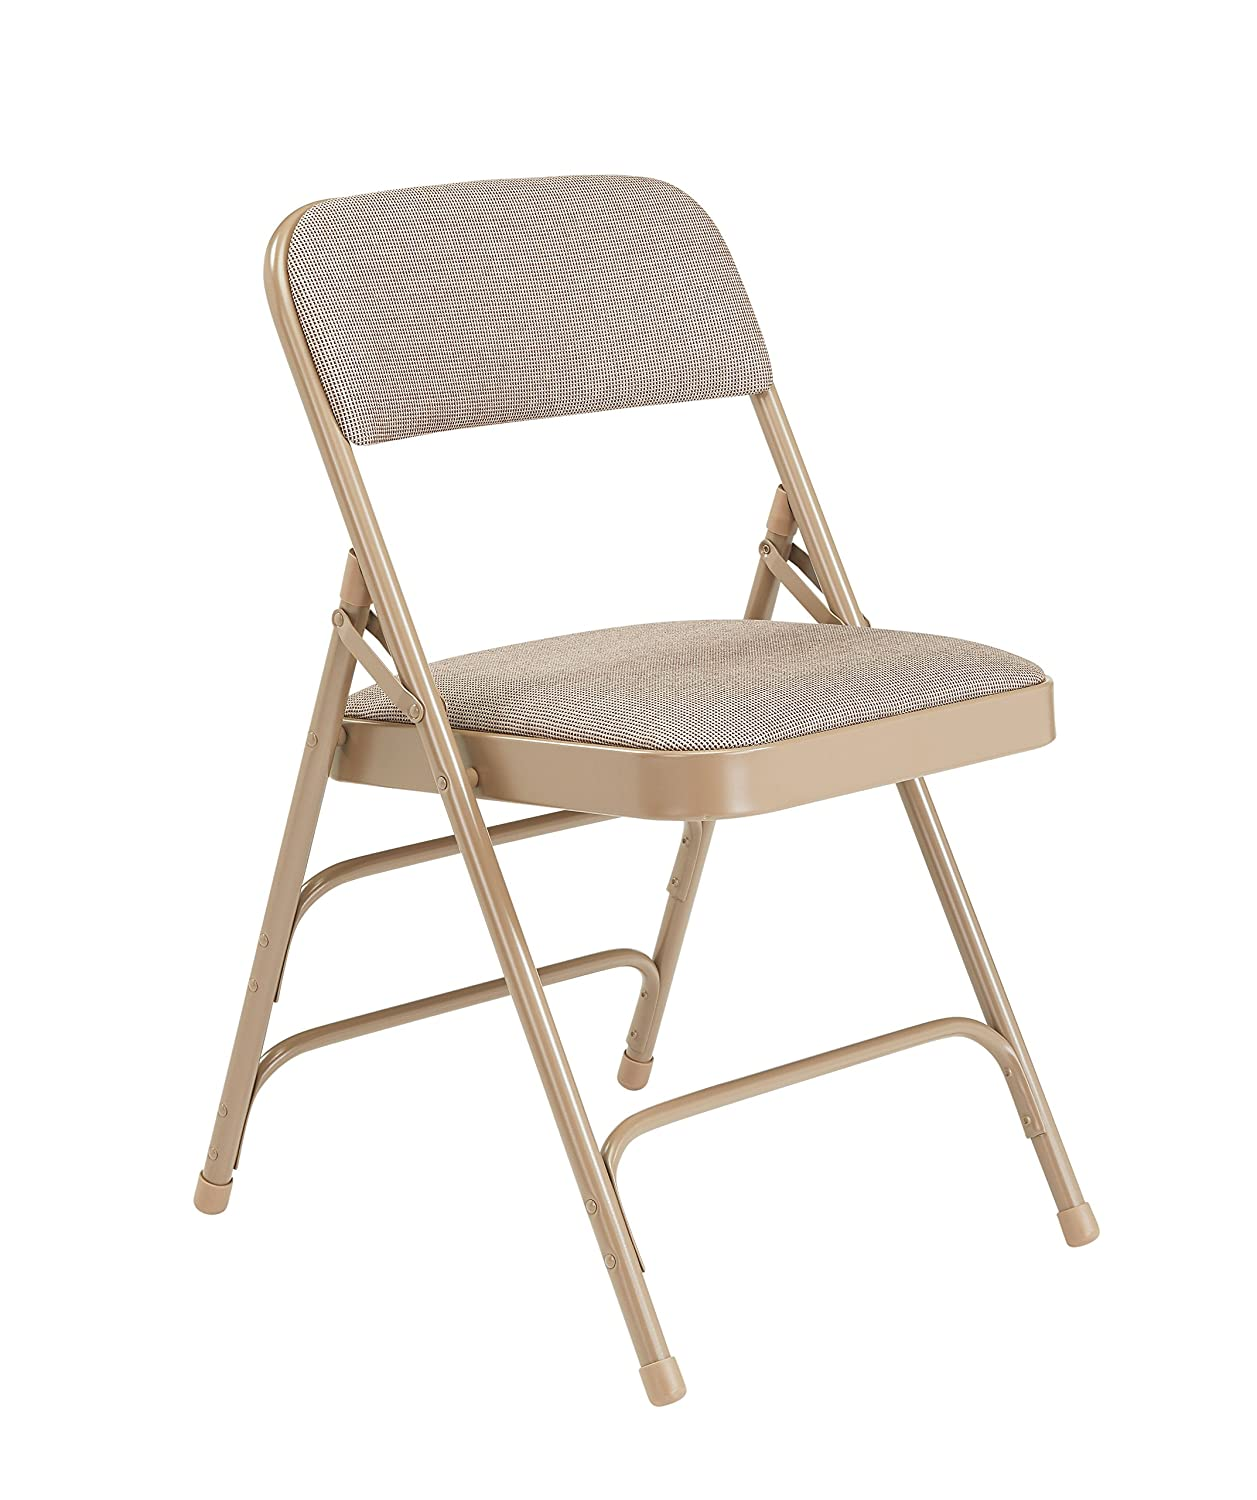 National Public Seating 2300 Series Steel Frame Upholstered Premium Fabric Seat and Back Folding Chair with Triple Brace, 480-Pound Capacity, Cafe Beige/Beige, Carton of 4 2301